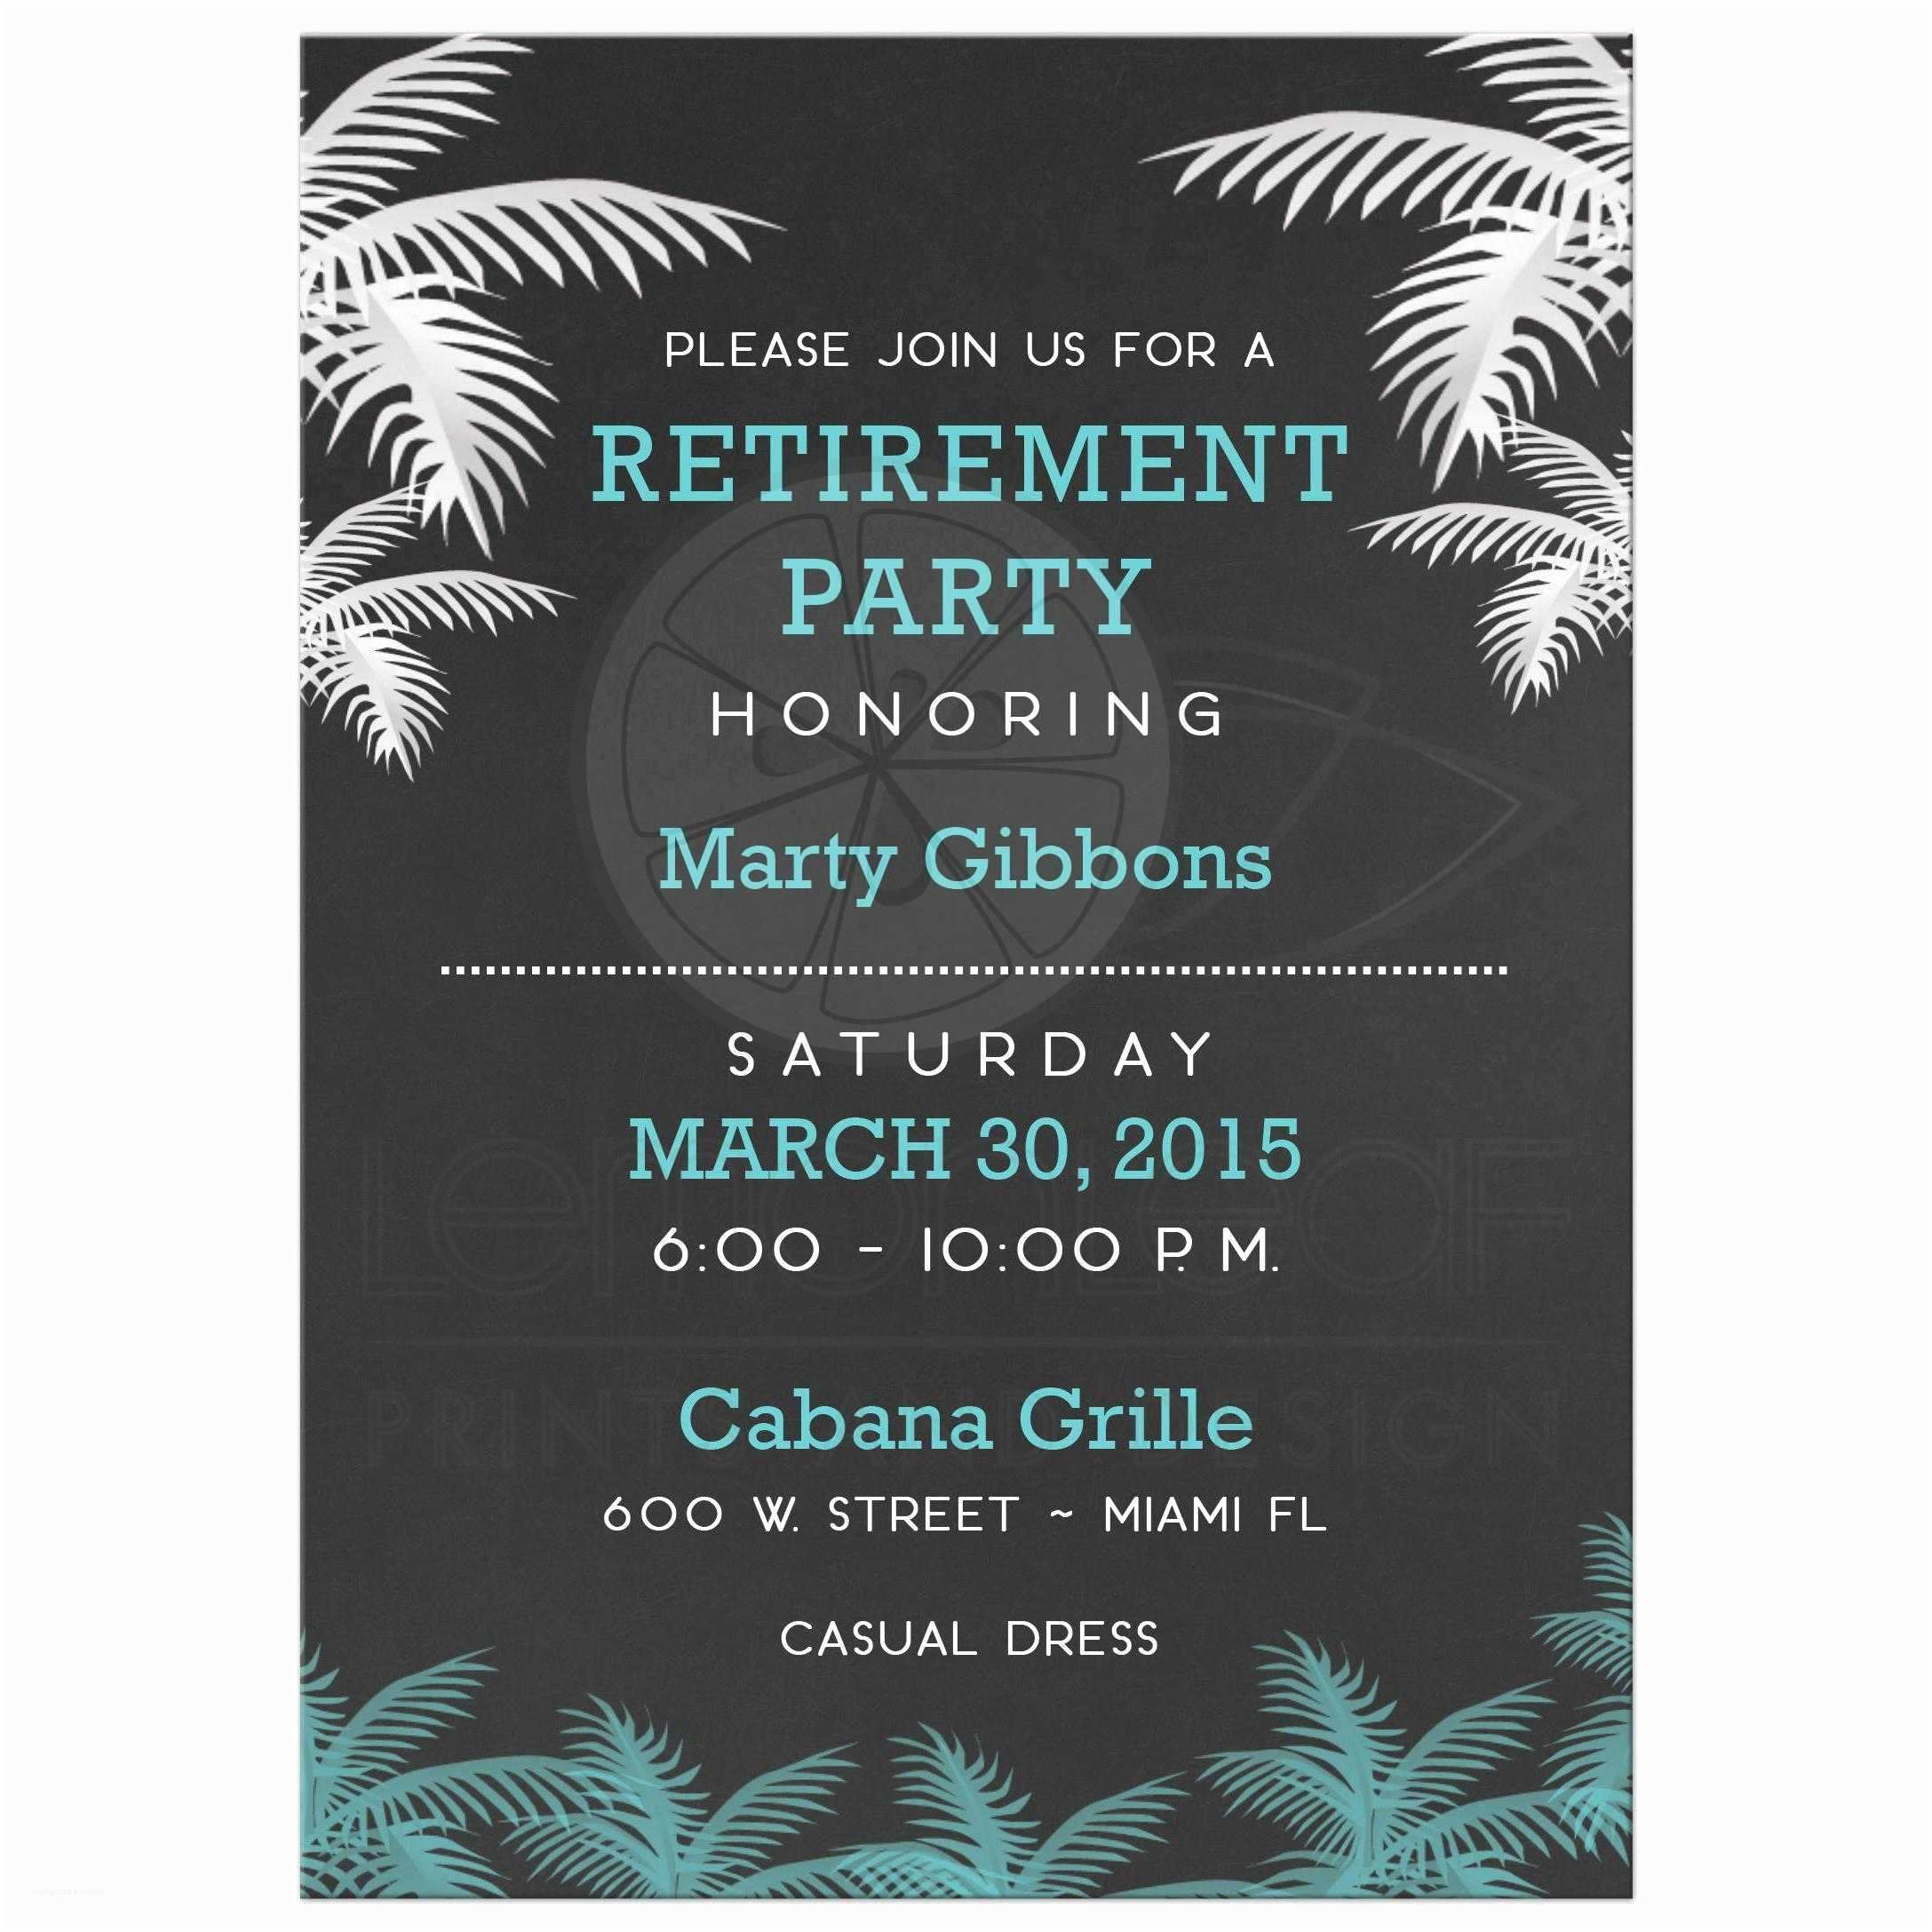 Retirement Invitation Template Retirement Party Invitations – Gangcraft